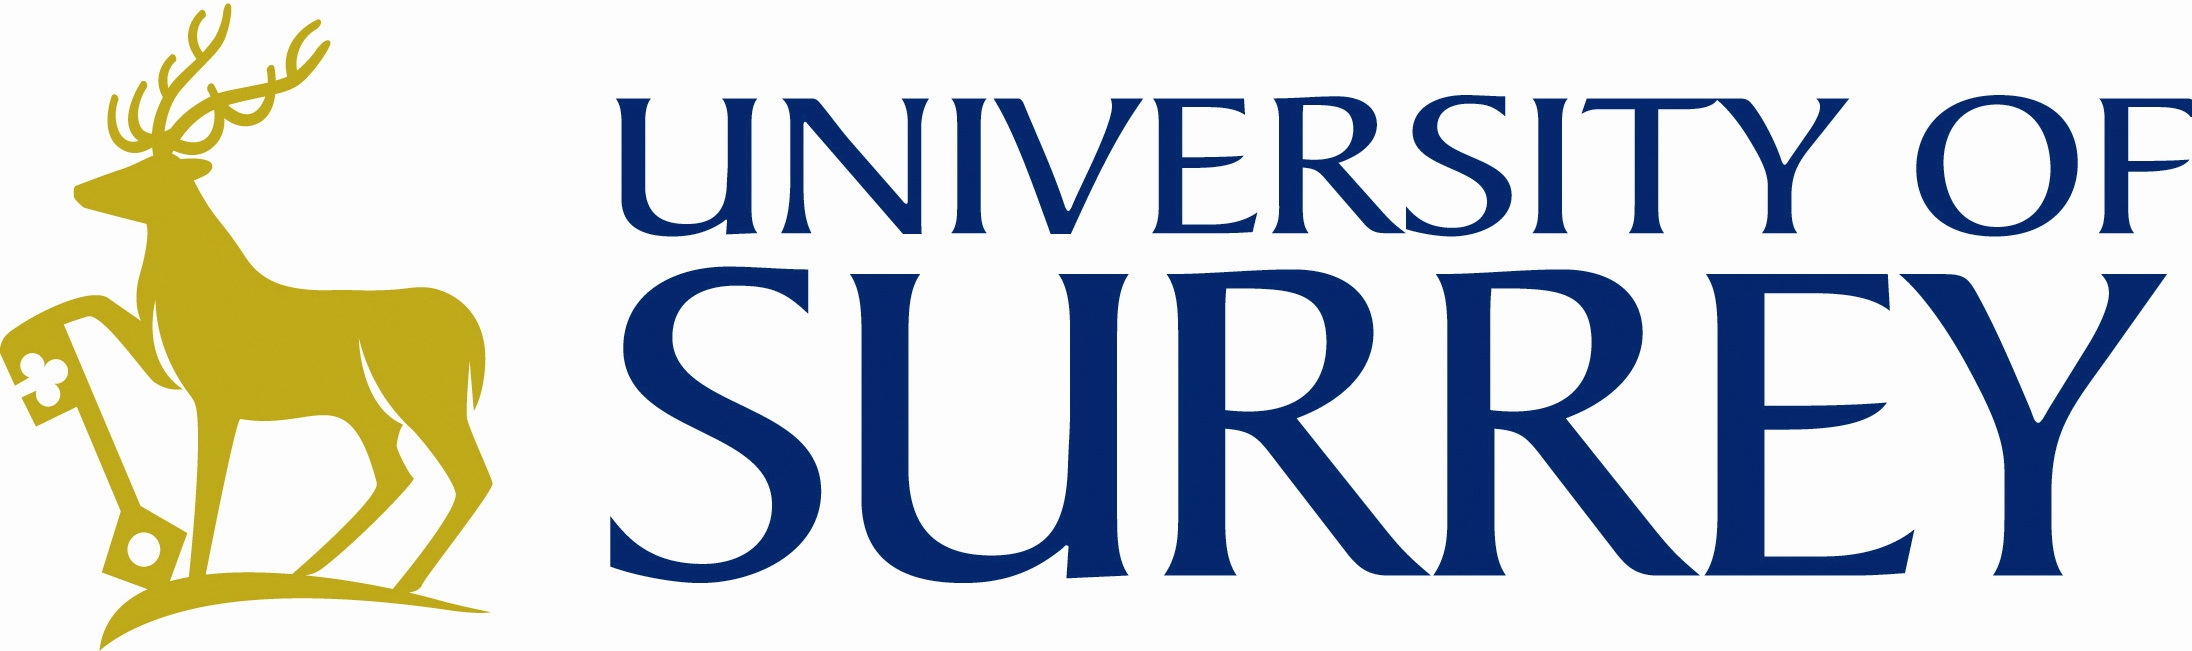 University of Surrey, Department of Physics